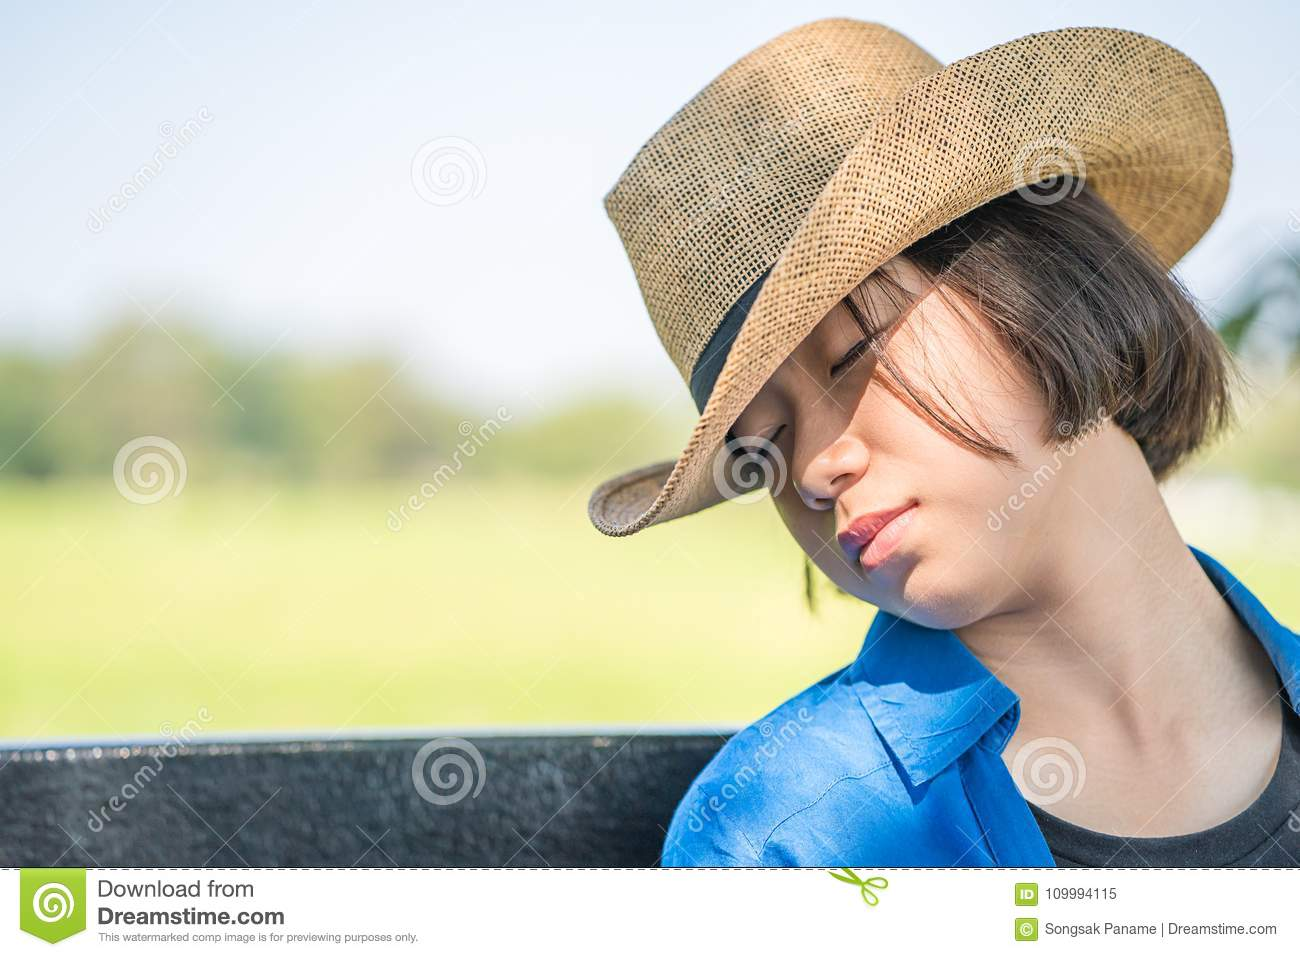 06603d51c Woman Wear Hat Sit Sleep In Countryside Stock Image - Image of short ...